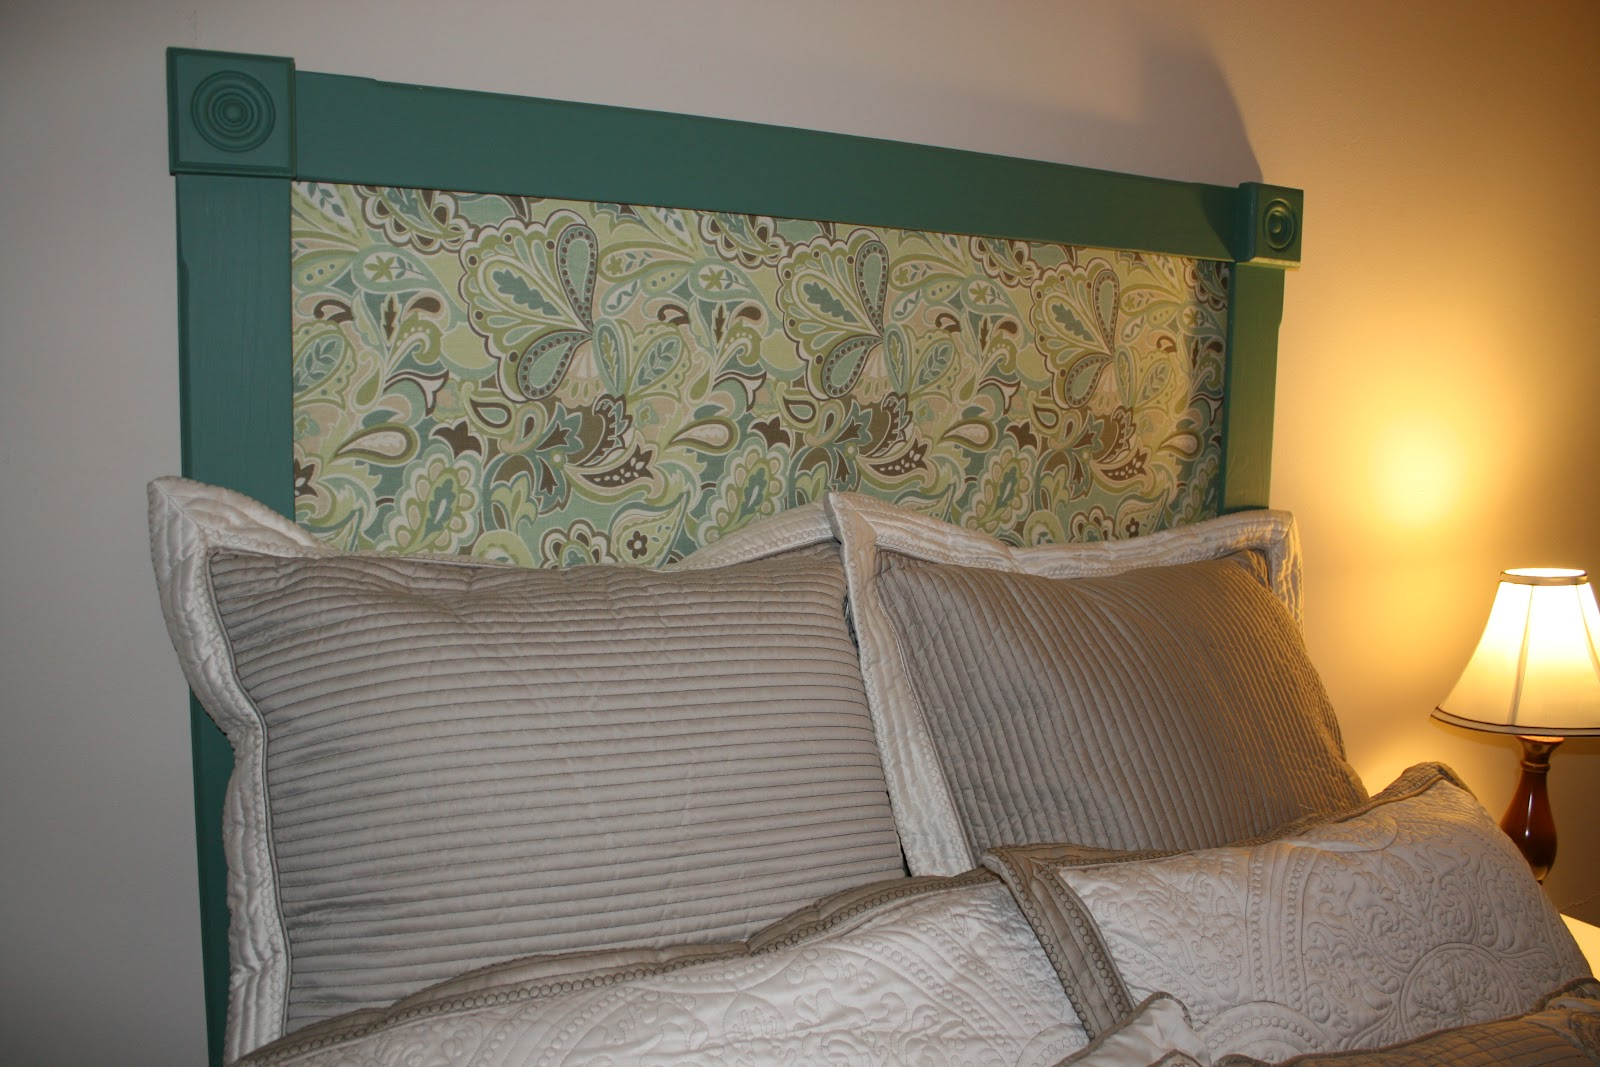 The Prices' Place: Homemade Headboard- Using What You Have!